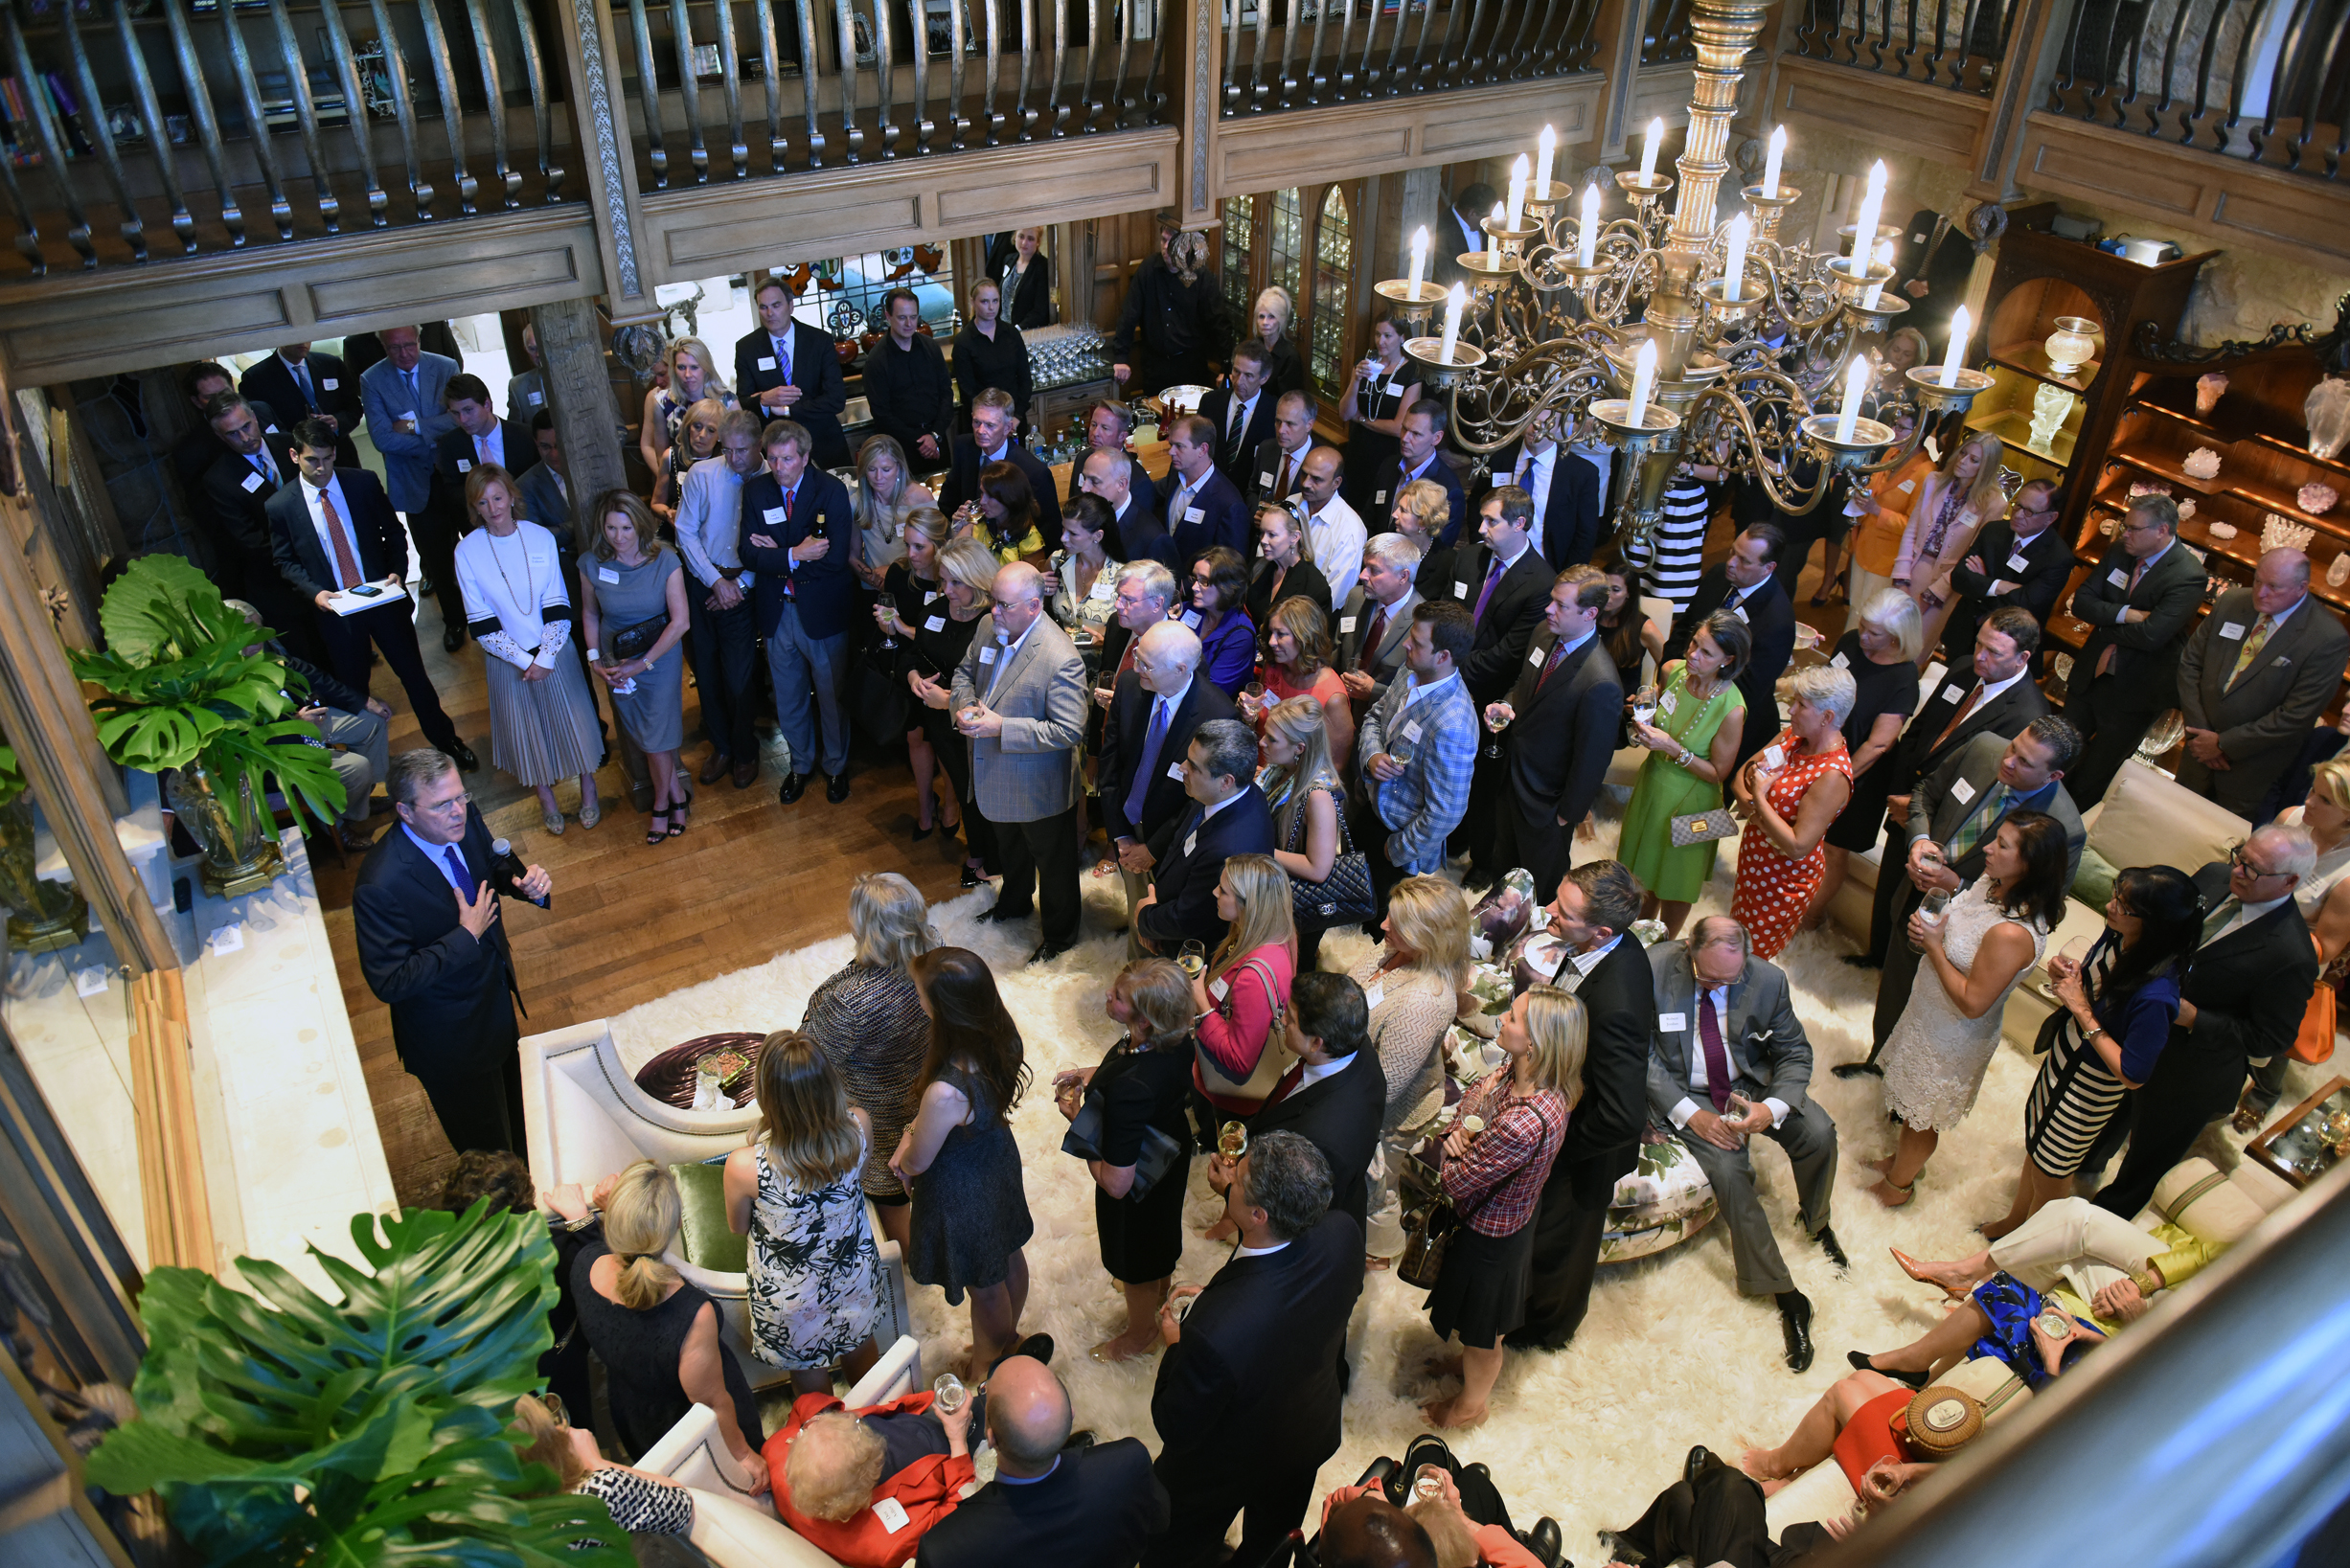 Governor Jeb Bush speaks at an evening reception in Dallas in 2015. Photo courtesy of Gerlinde Photography / Michael Hopkins.